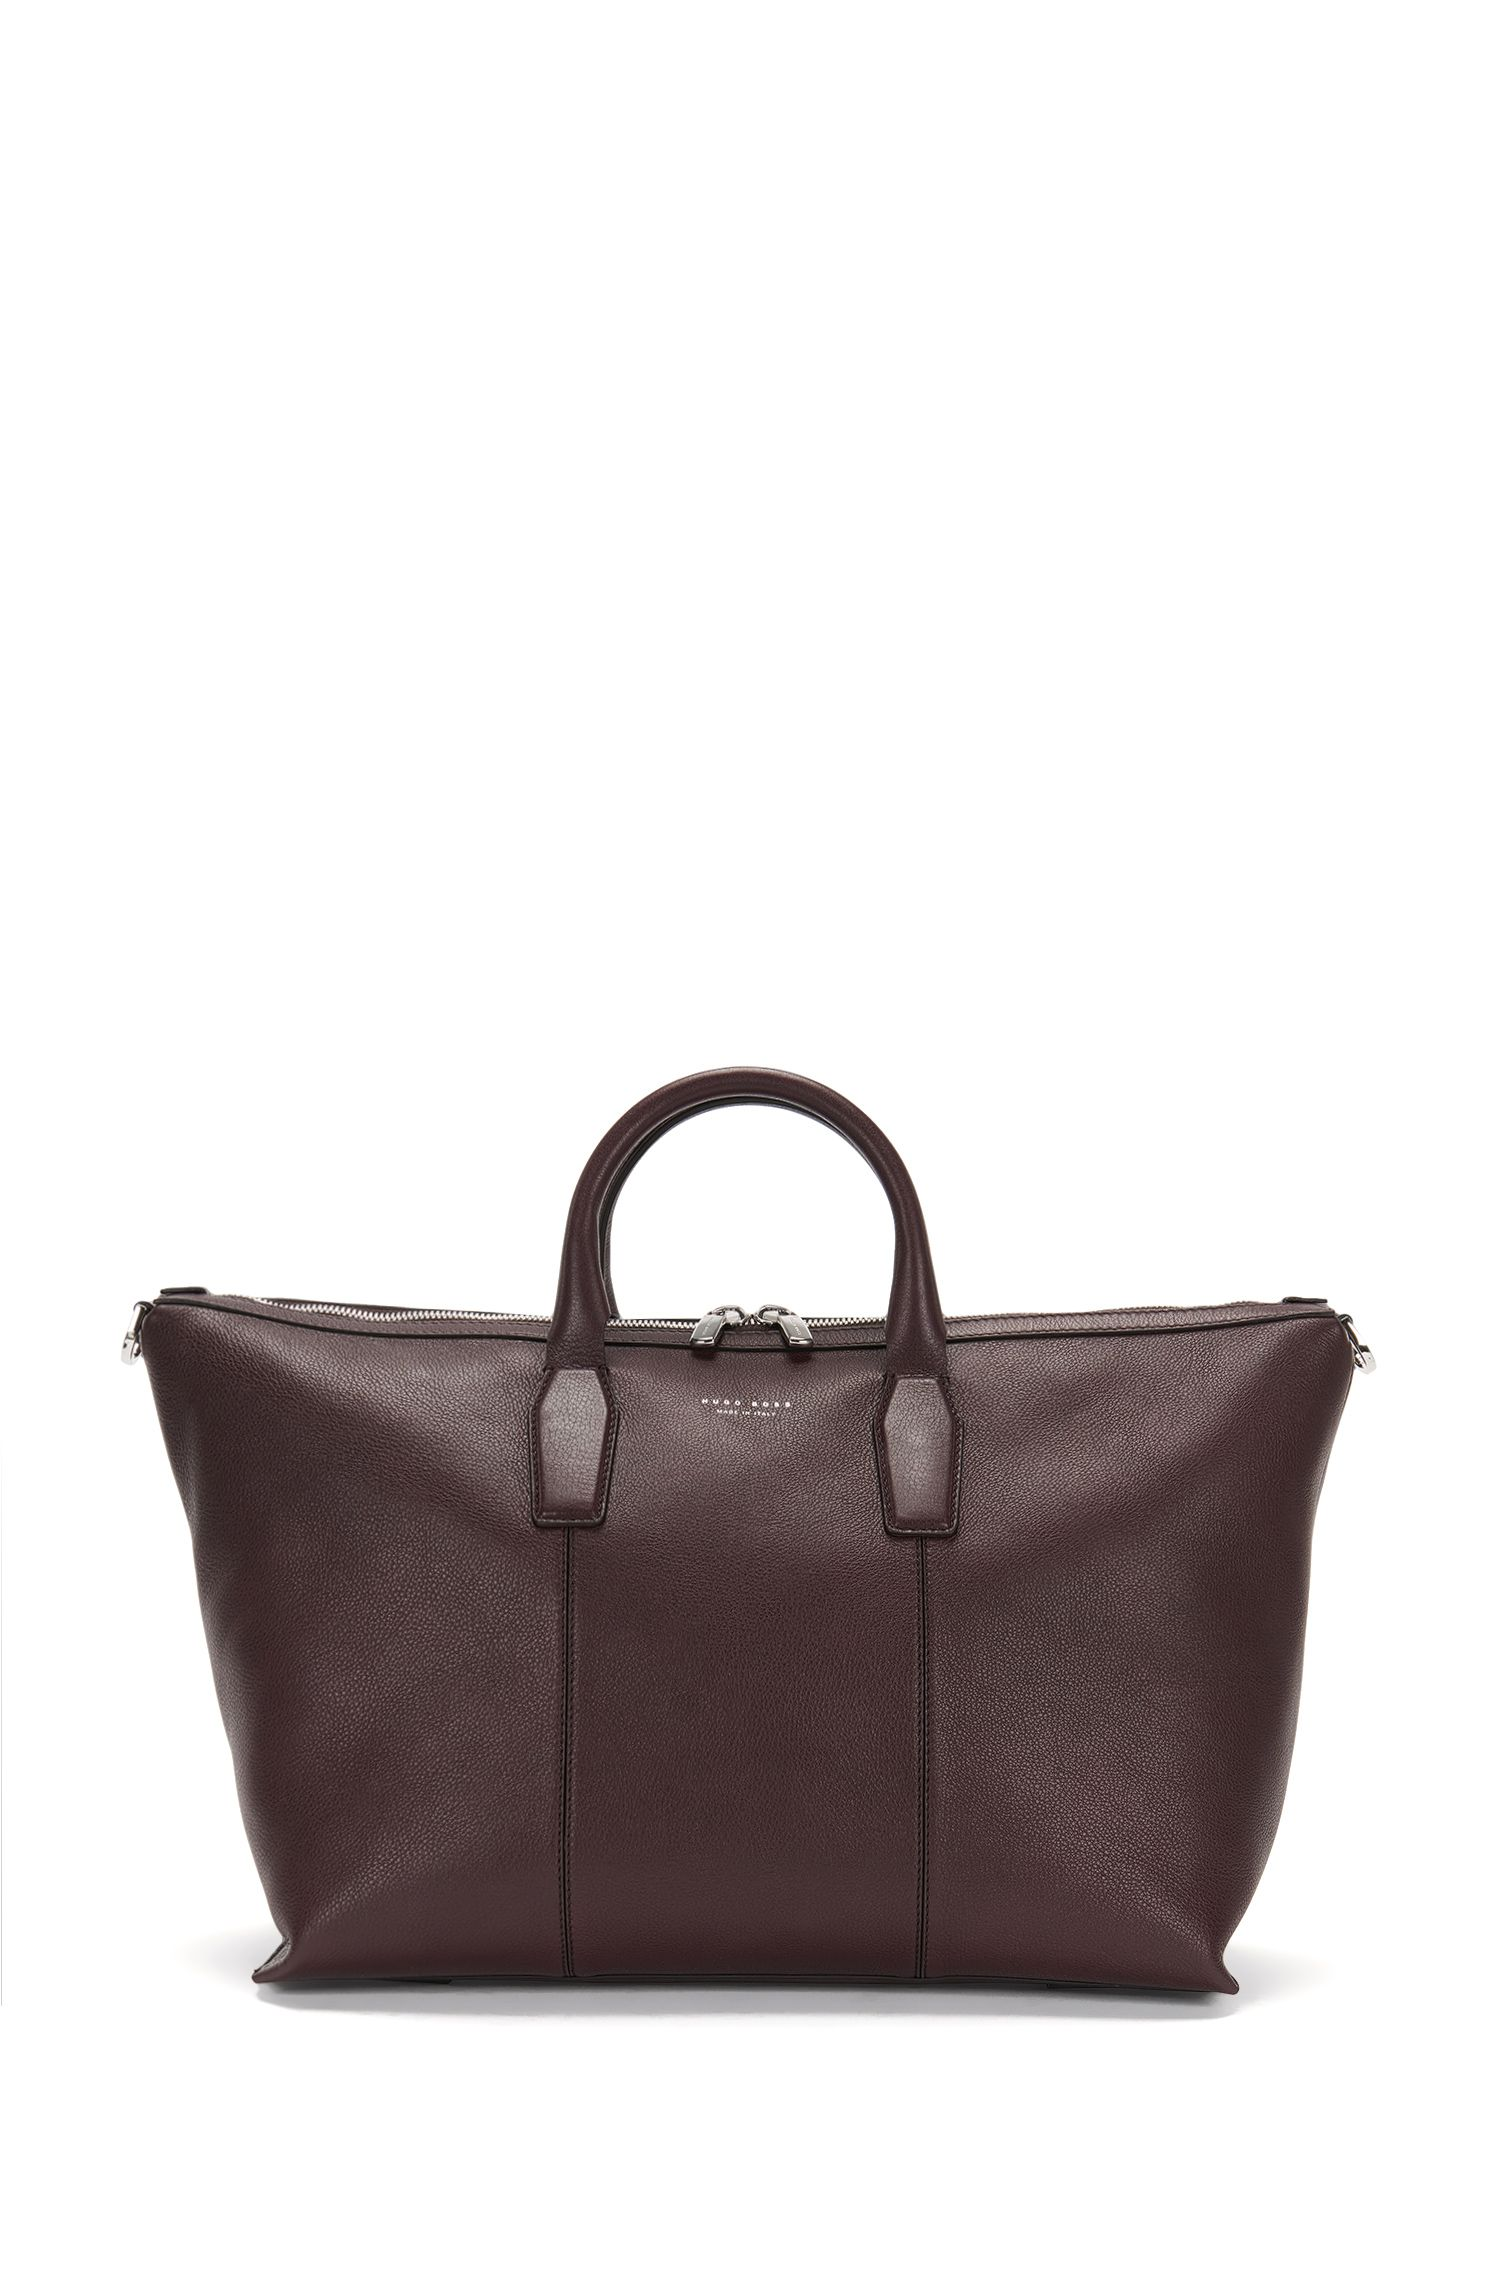 'Elite_Holdall' | Italian Leather Weekender Bag, Removable Shoulder Strap